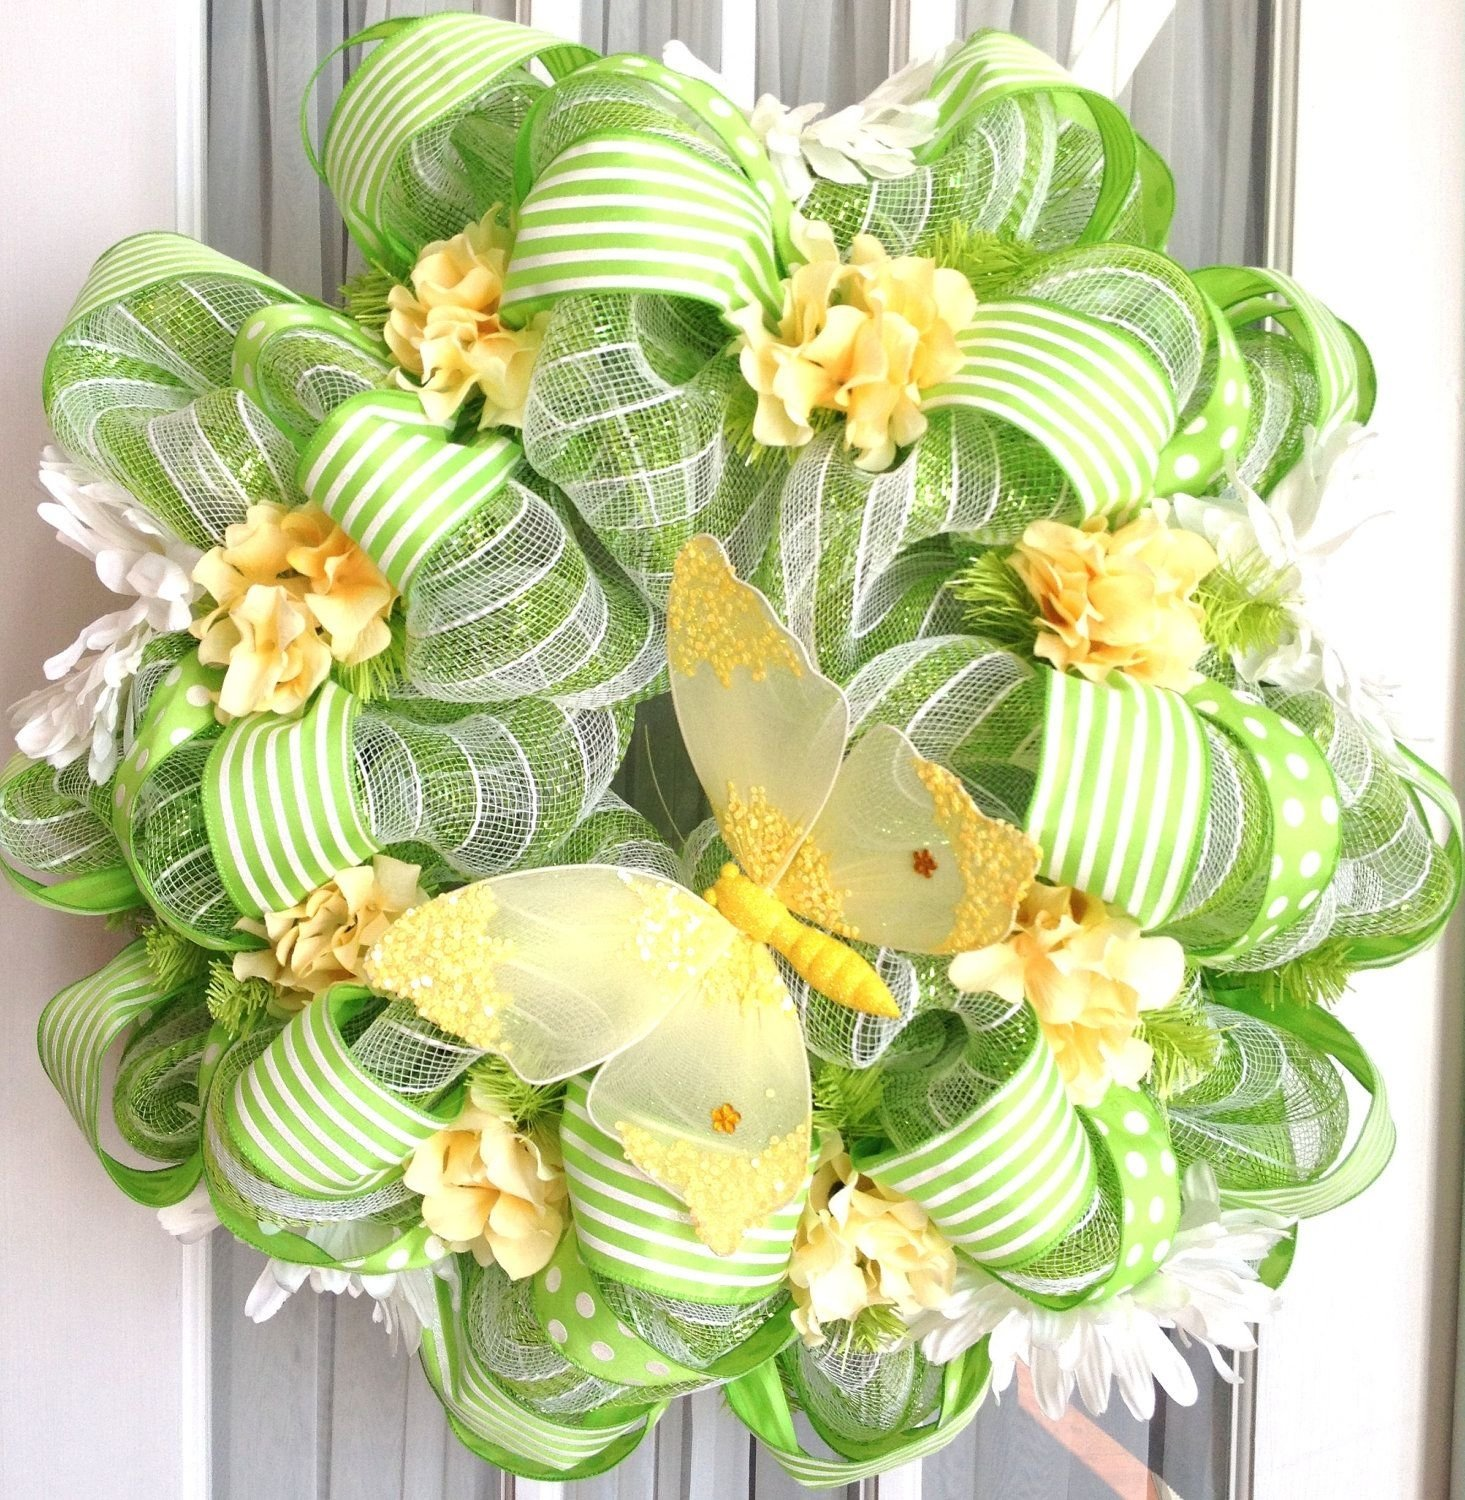 10 Fabulous Spring Deco Mesh Wreath Ideas spring summer mesh wreath lime green white stripes wreaths limes 2020